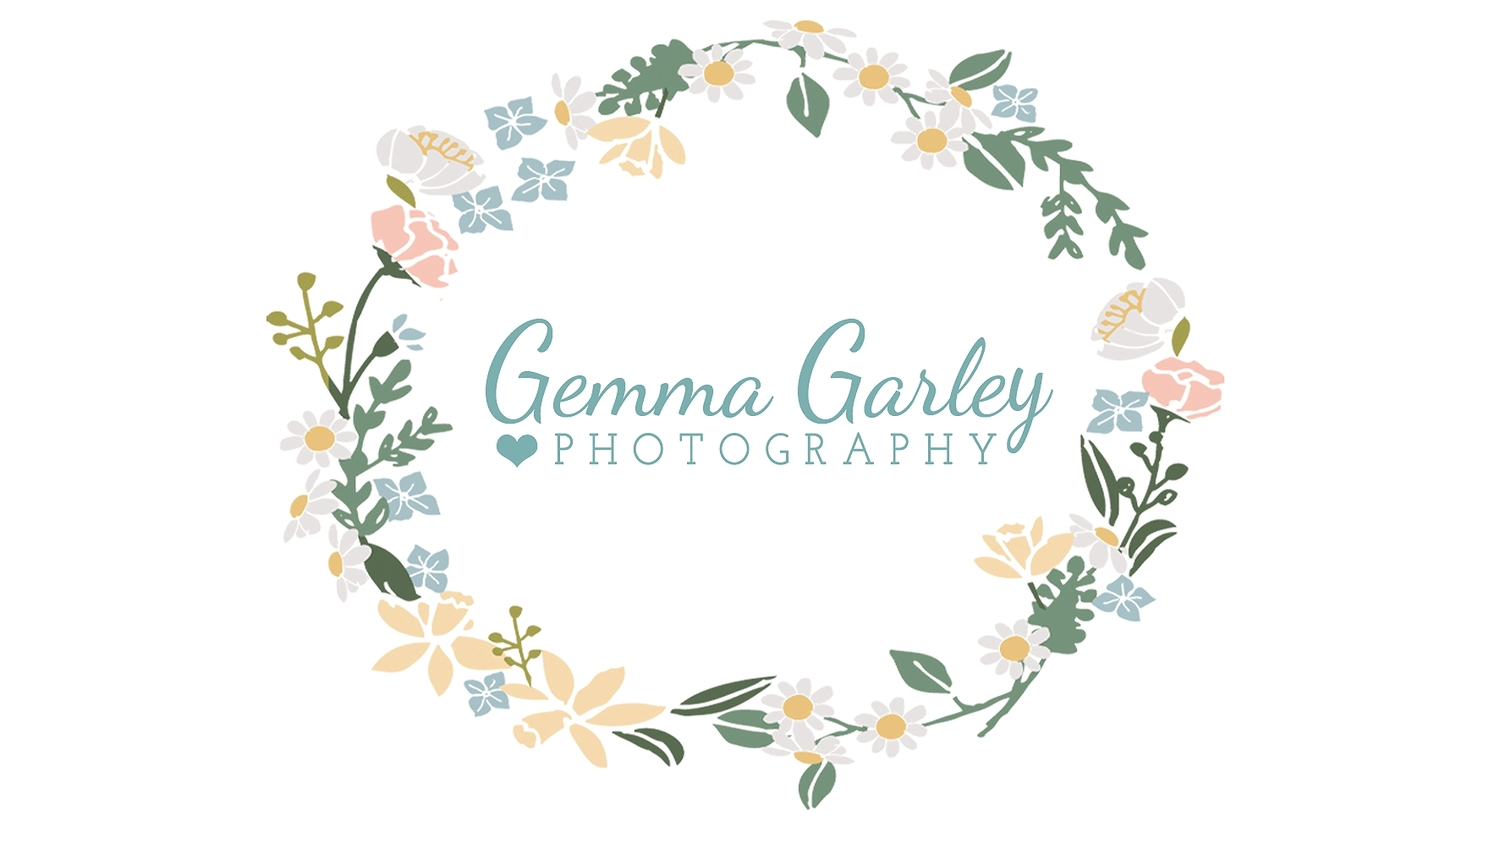 Gemma Garley Photography